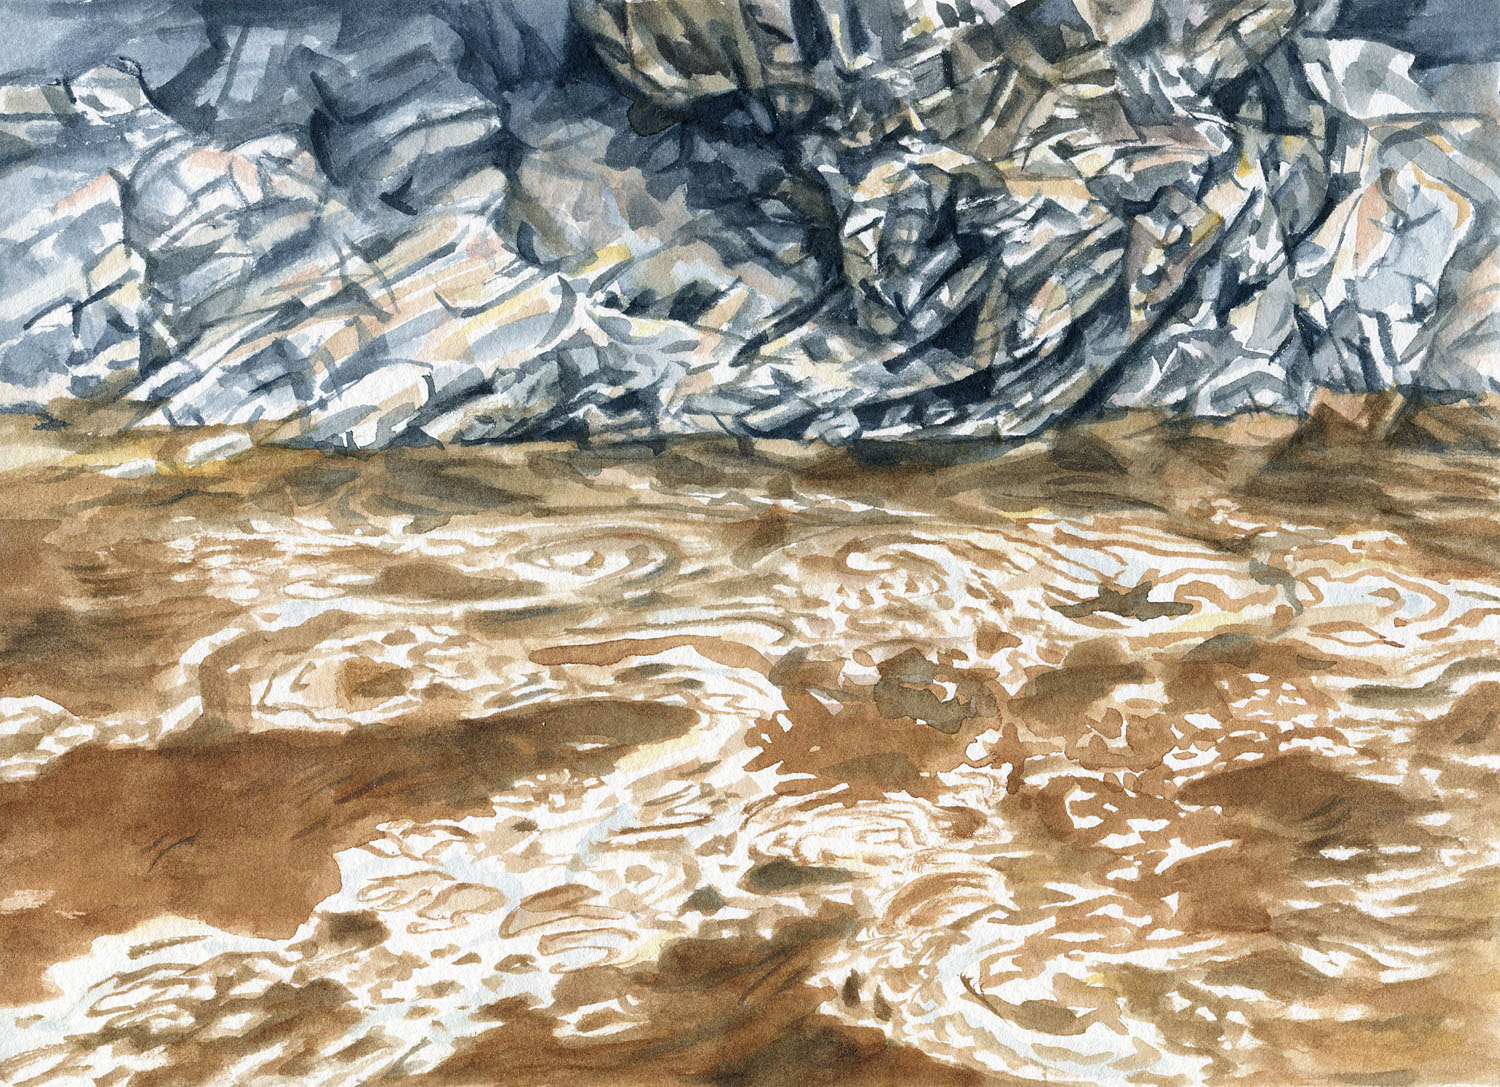 Field Studies (Red Rocks Gorge, Murrumbidgee River 2), watercolour on paper, 18cm x 25cm, 2015